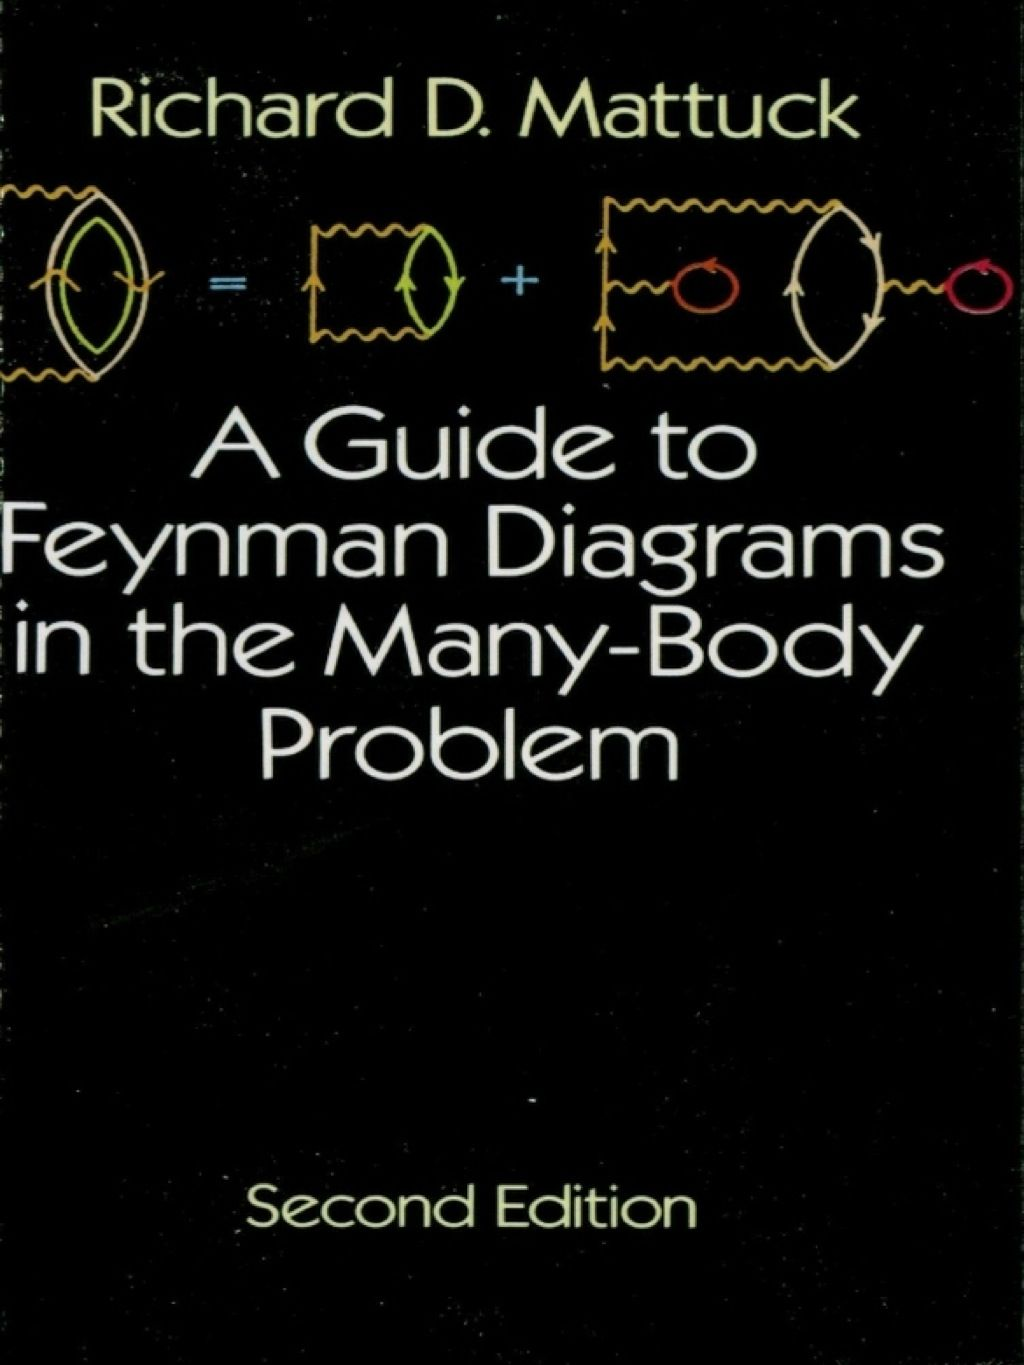 A Guide To Feynman Diagrams In The Many